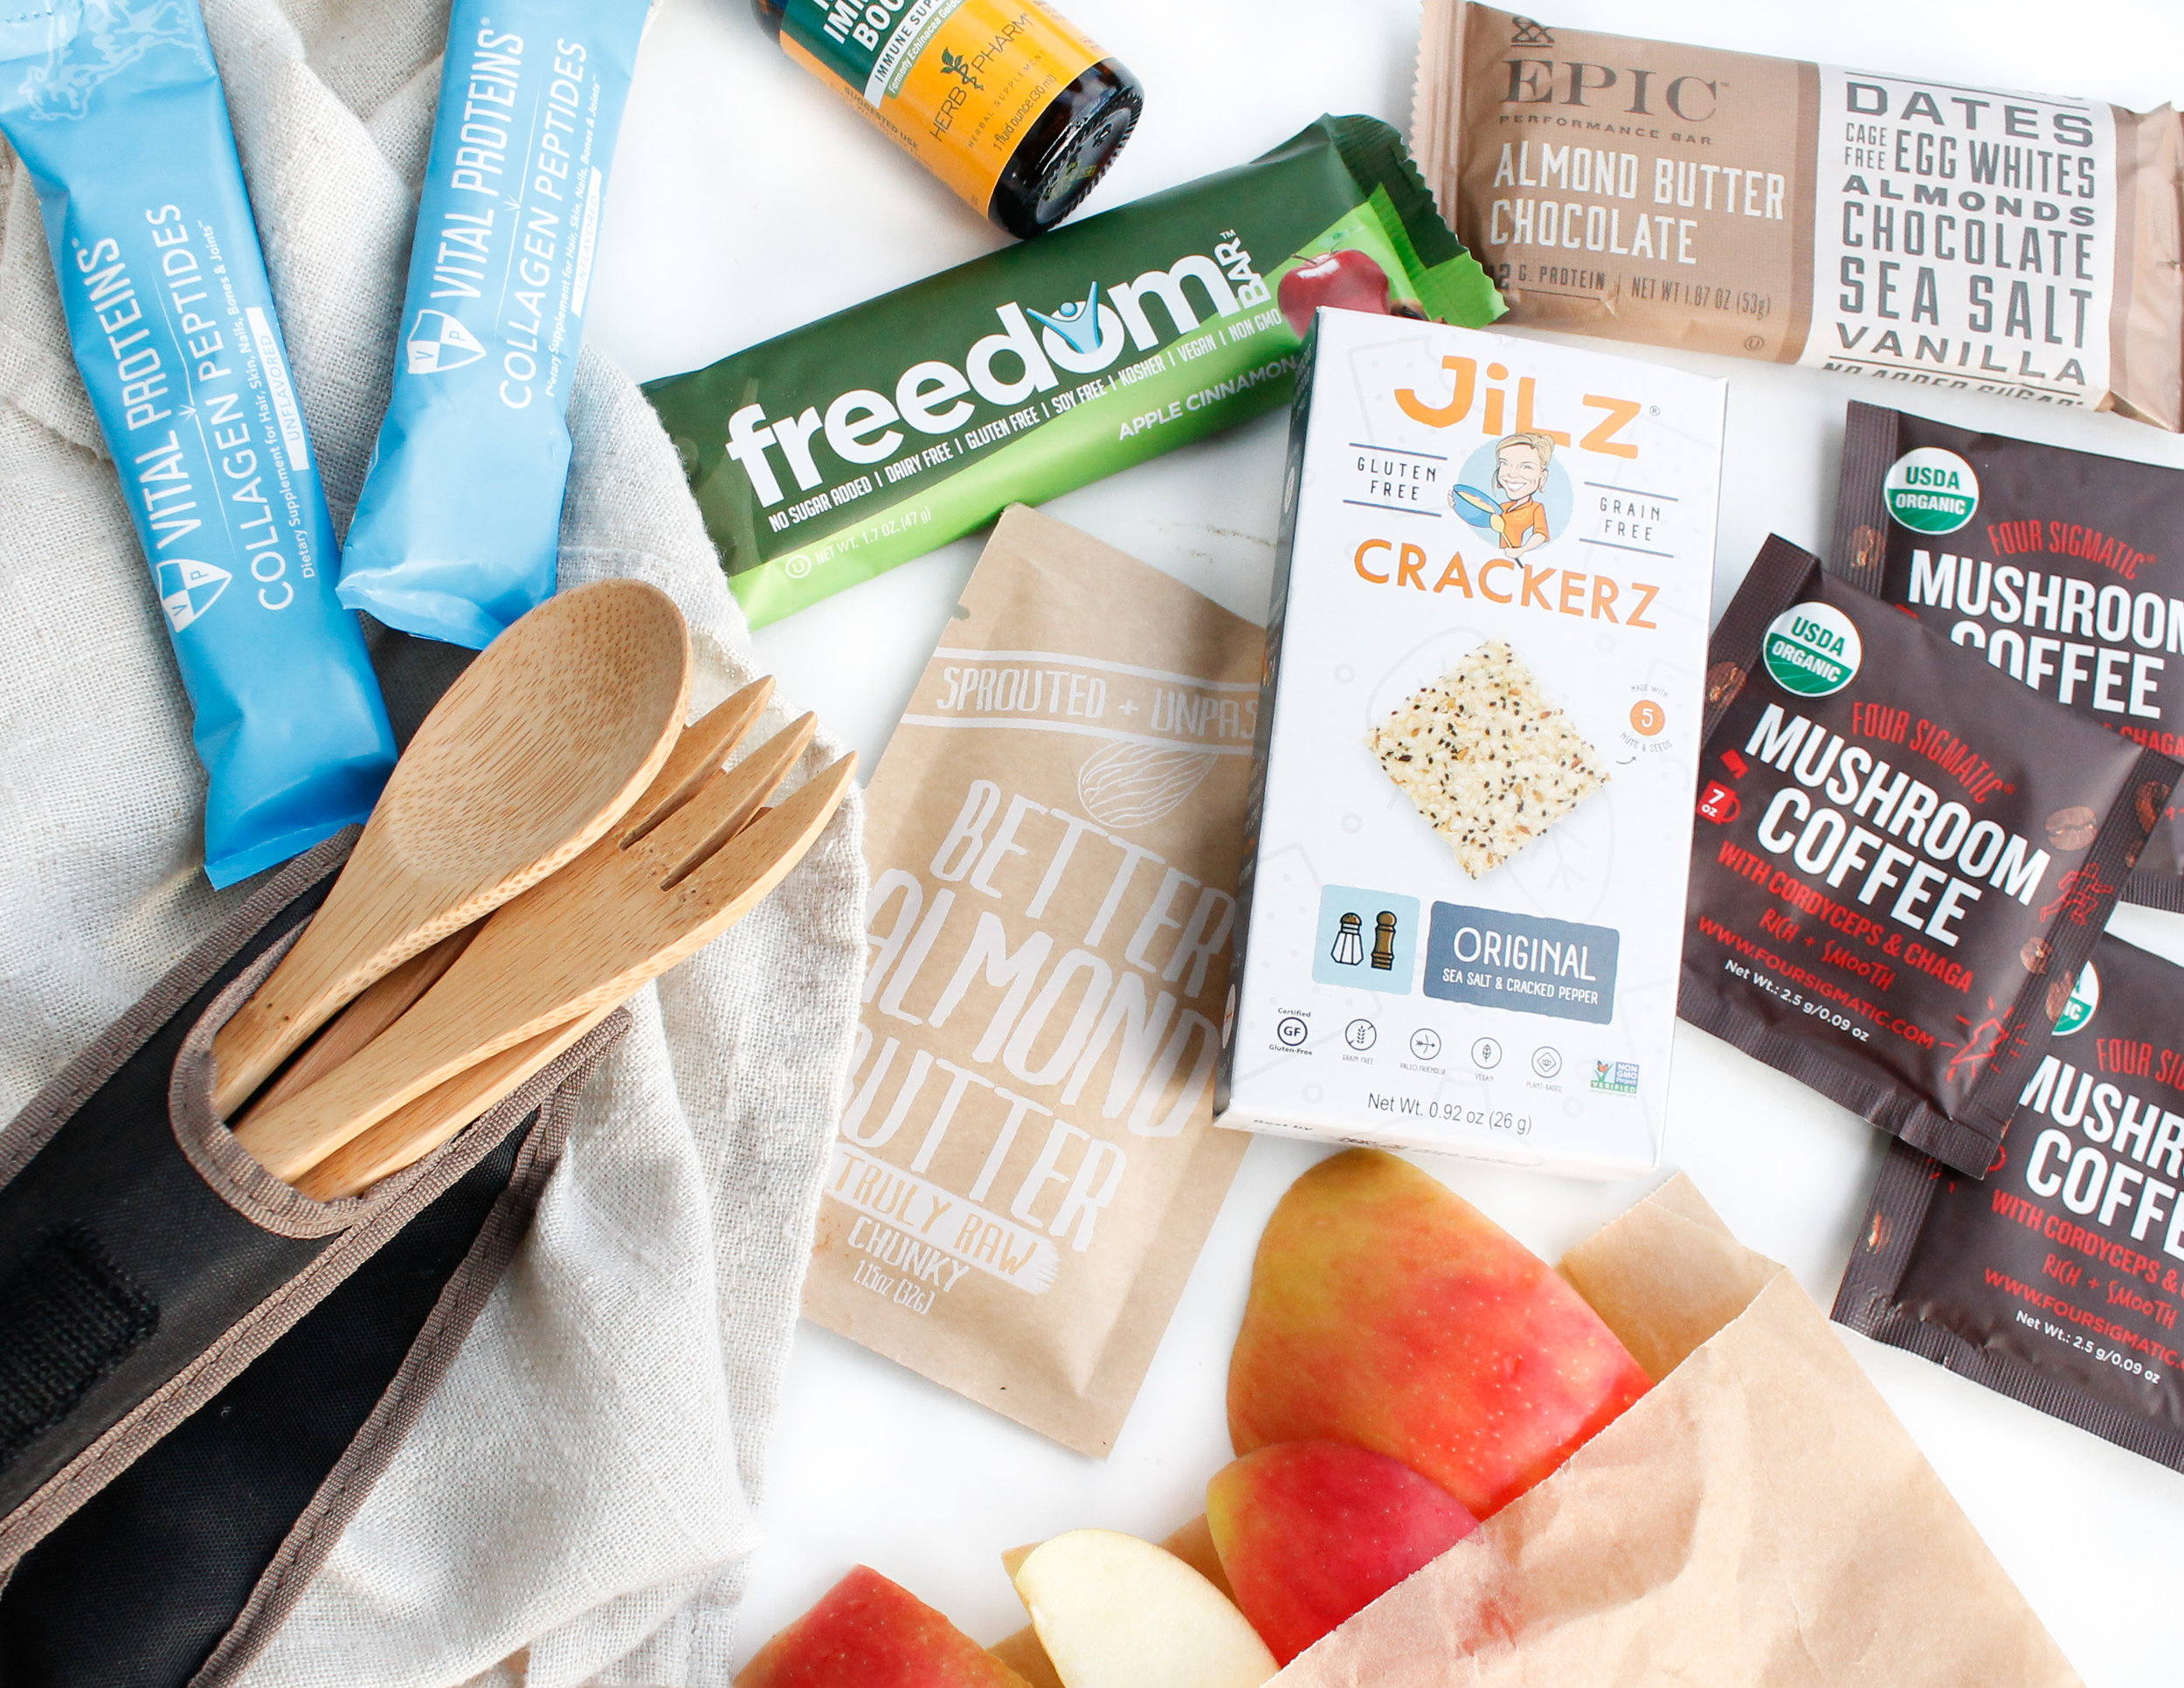 (please note that this blog post is not sponsored by any of the pictured brands. I am simply showing some of my own favorite gut-friendly travel snacks and must-haves)